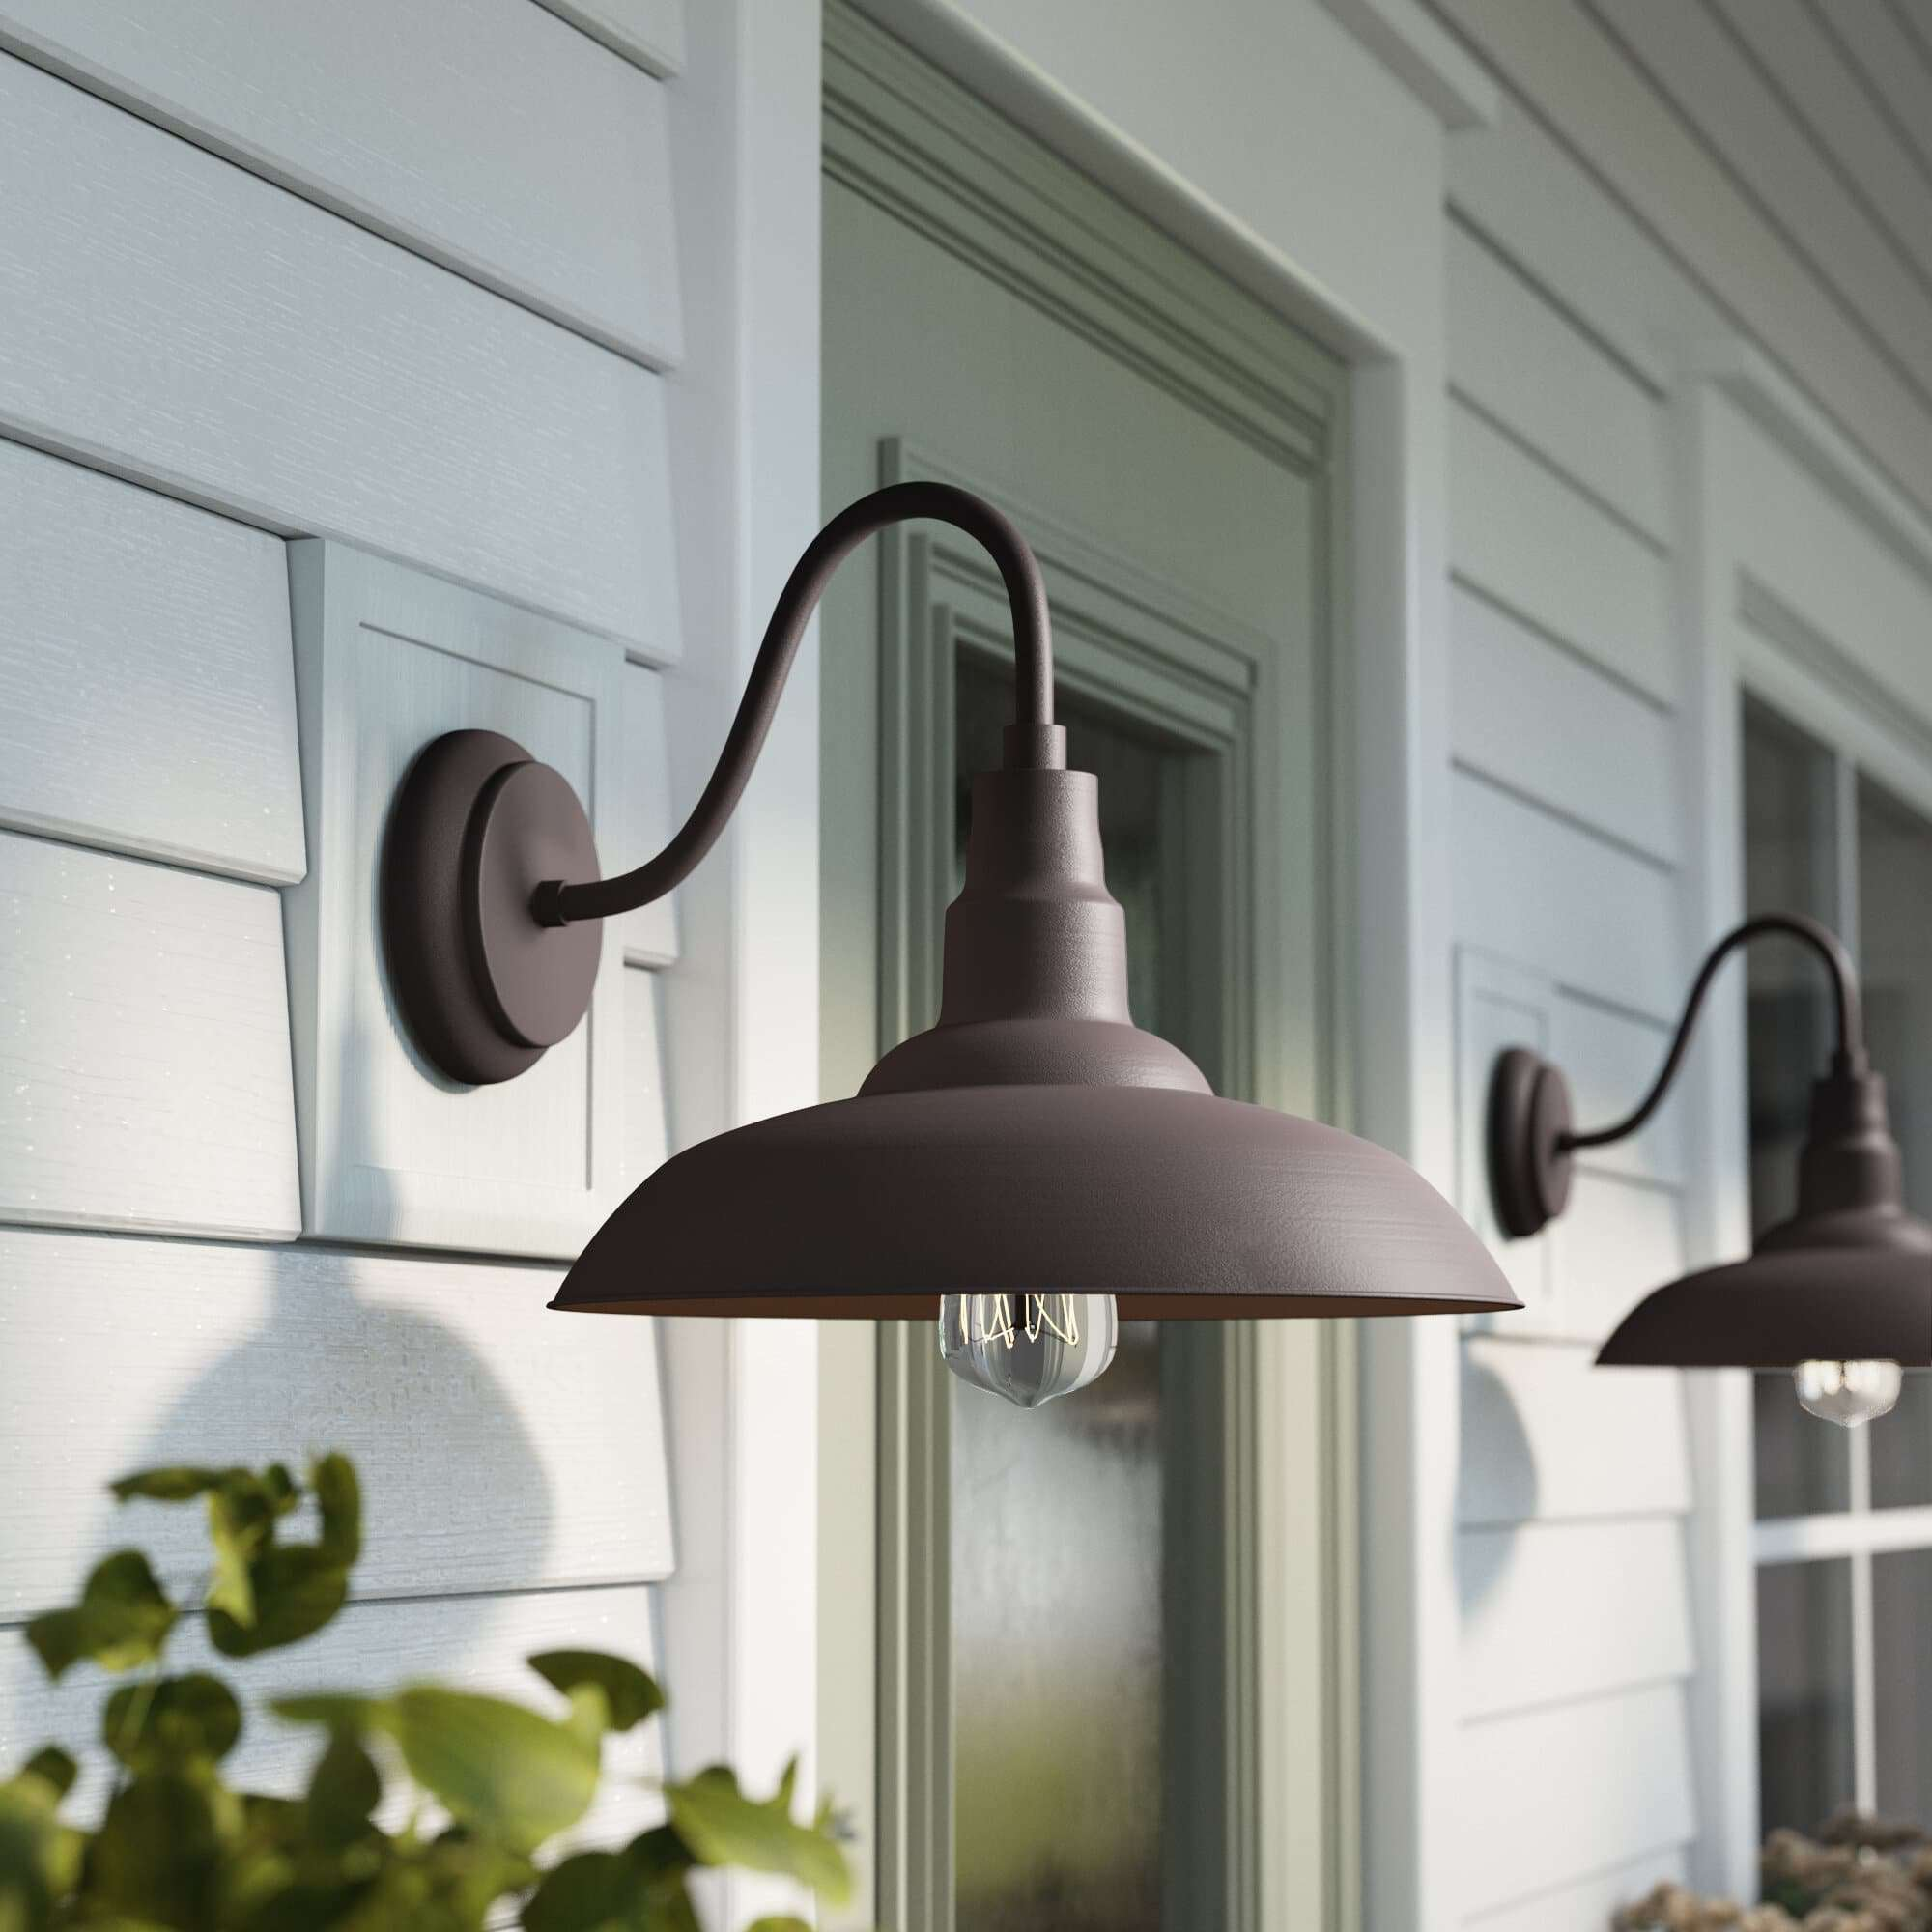 Top 7 Best Gooseneck Barn Light in 2020